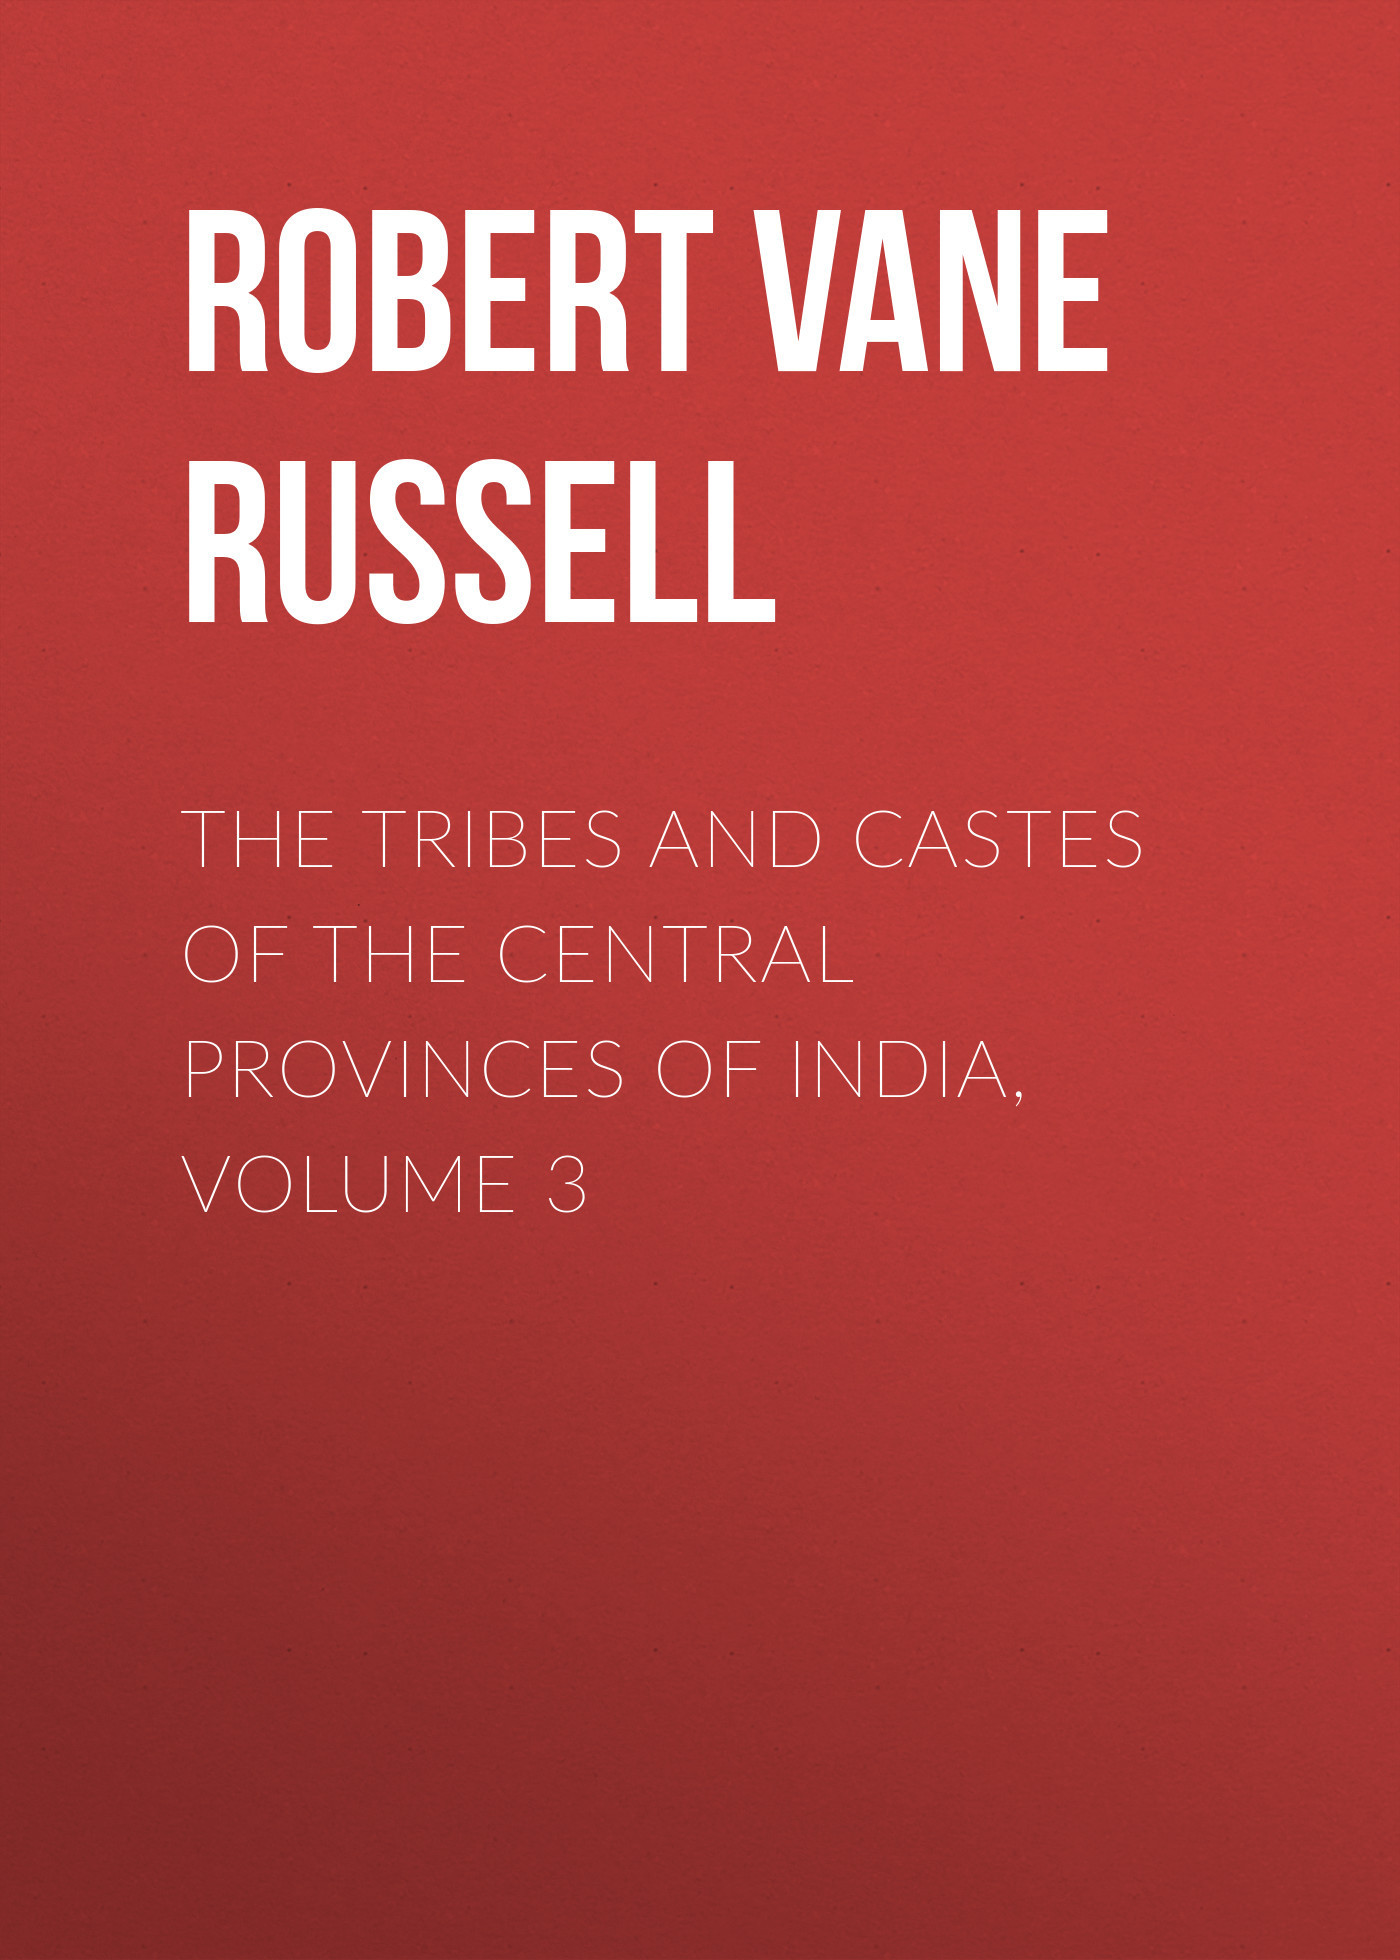 Robert Vane Russell The Tribes and Castes of the Central Provinces of India, Volume 3 india the constitution of india